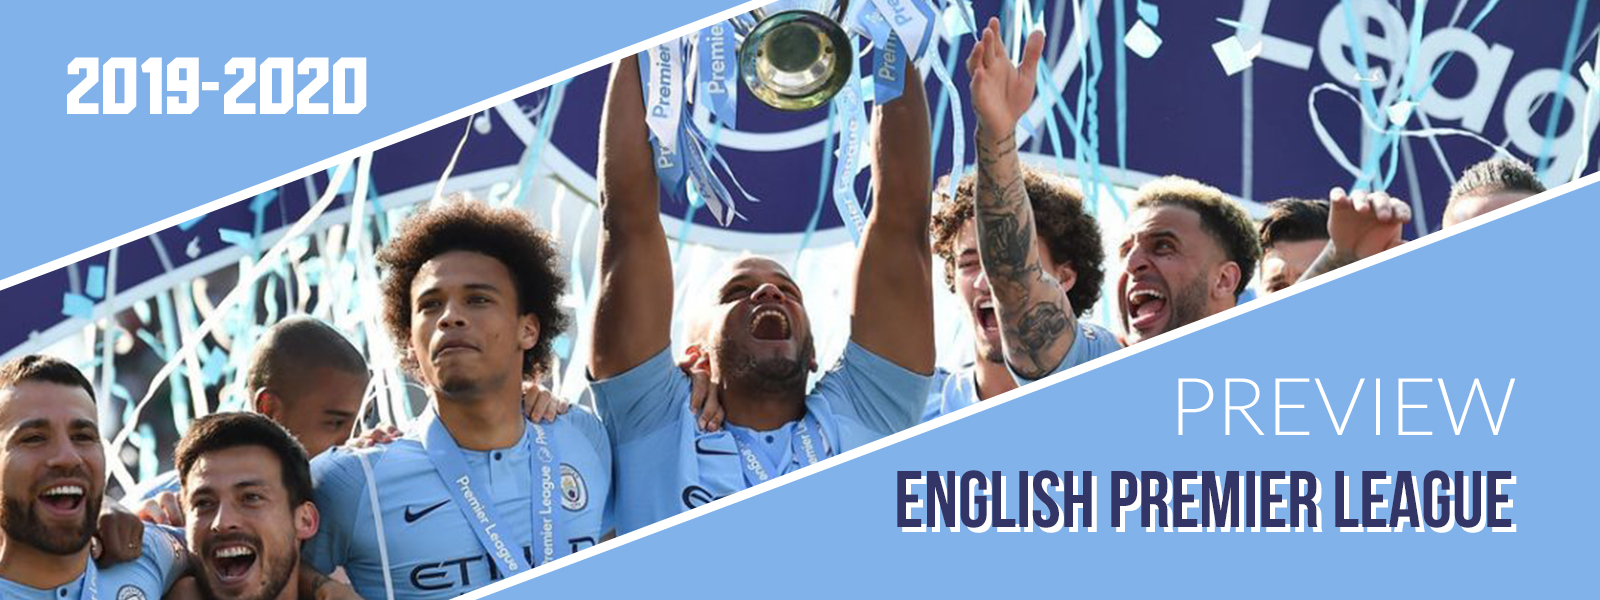 2019-2020 English Premier League Preview